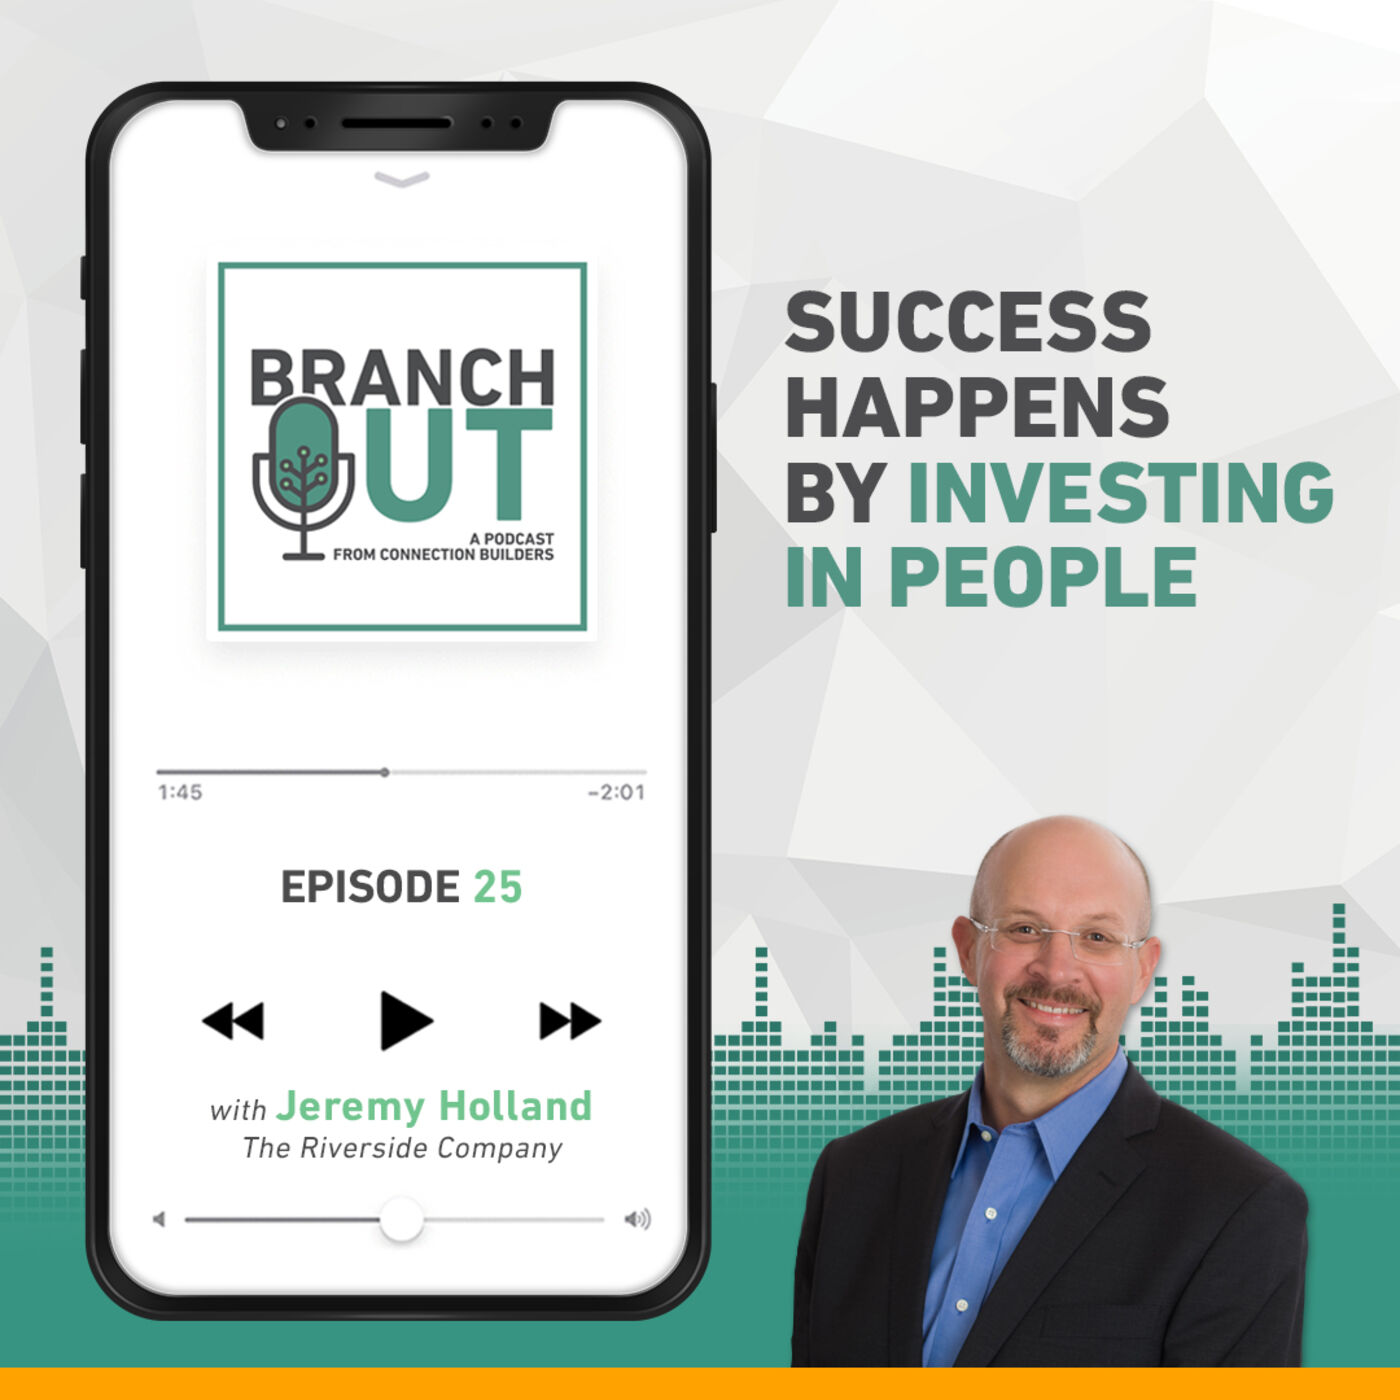 Investing in People - Jeremy Holland